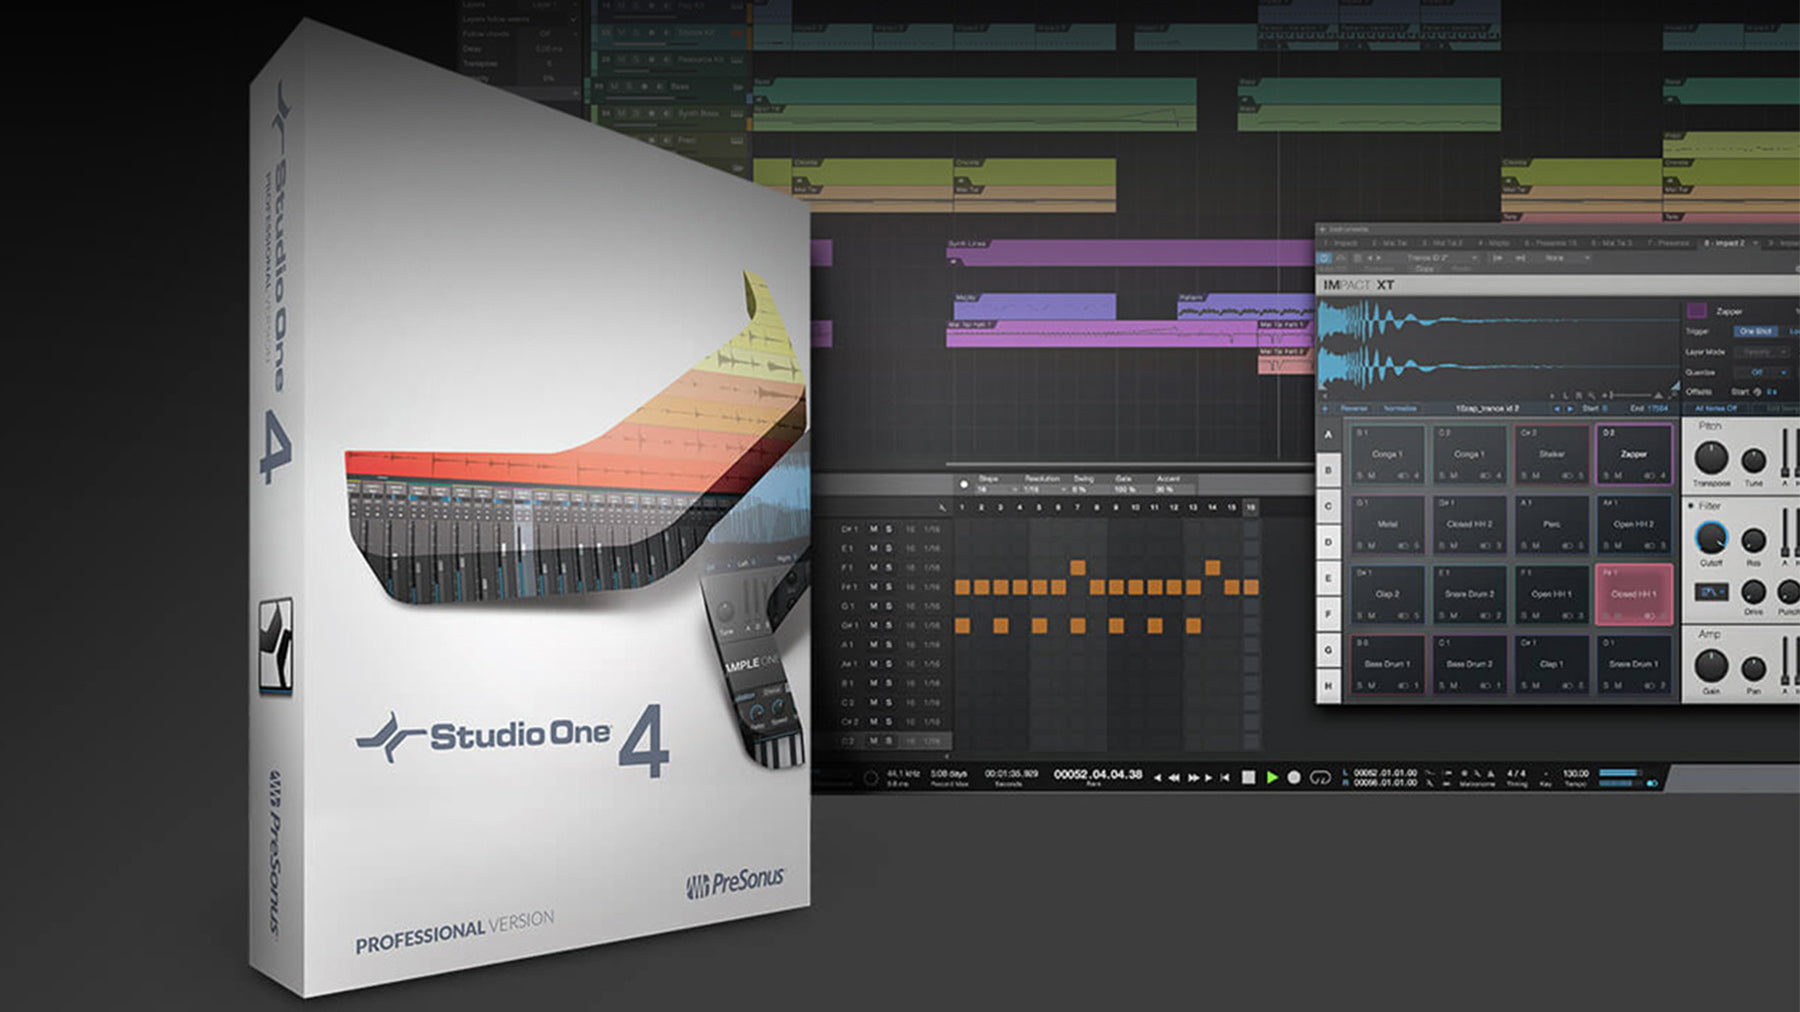 PreSonus Studio One 4 - Highlights